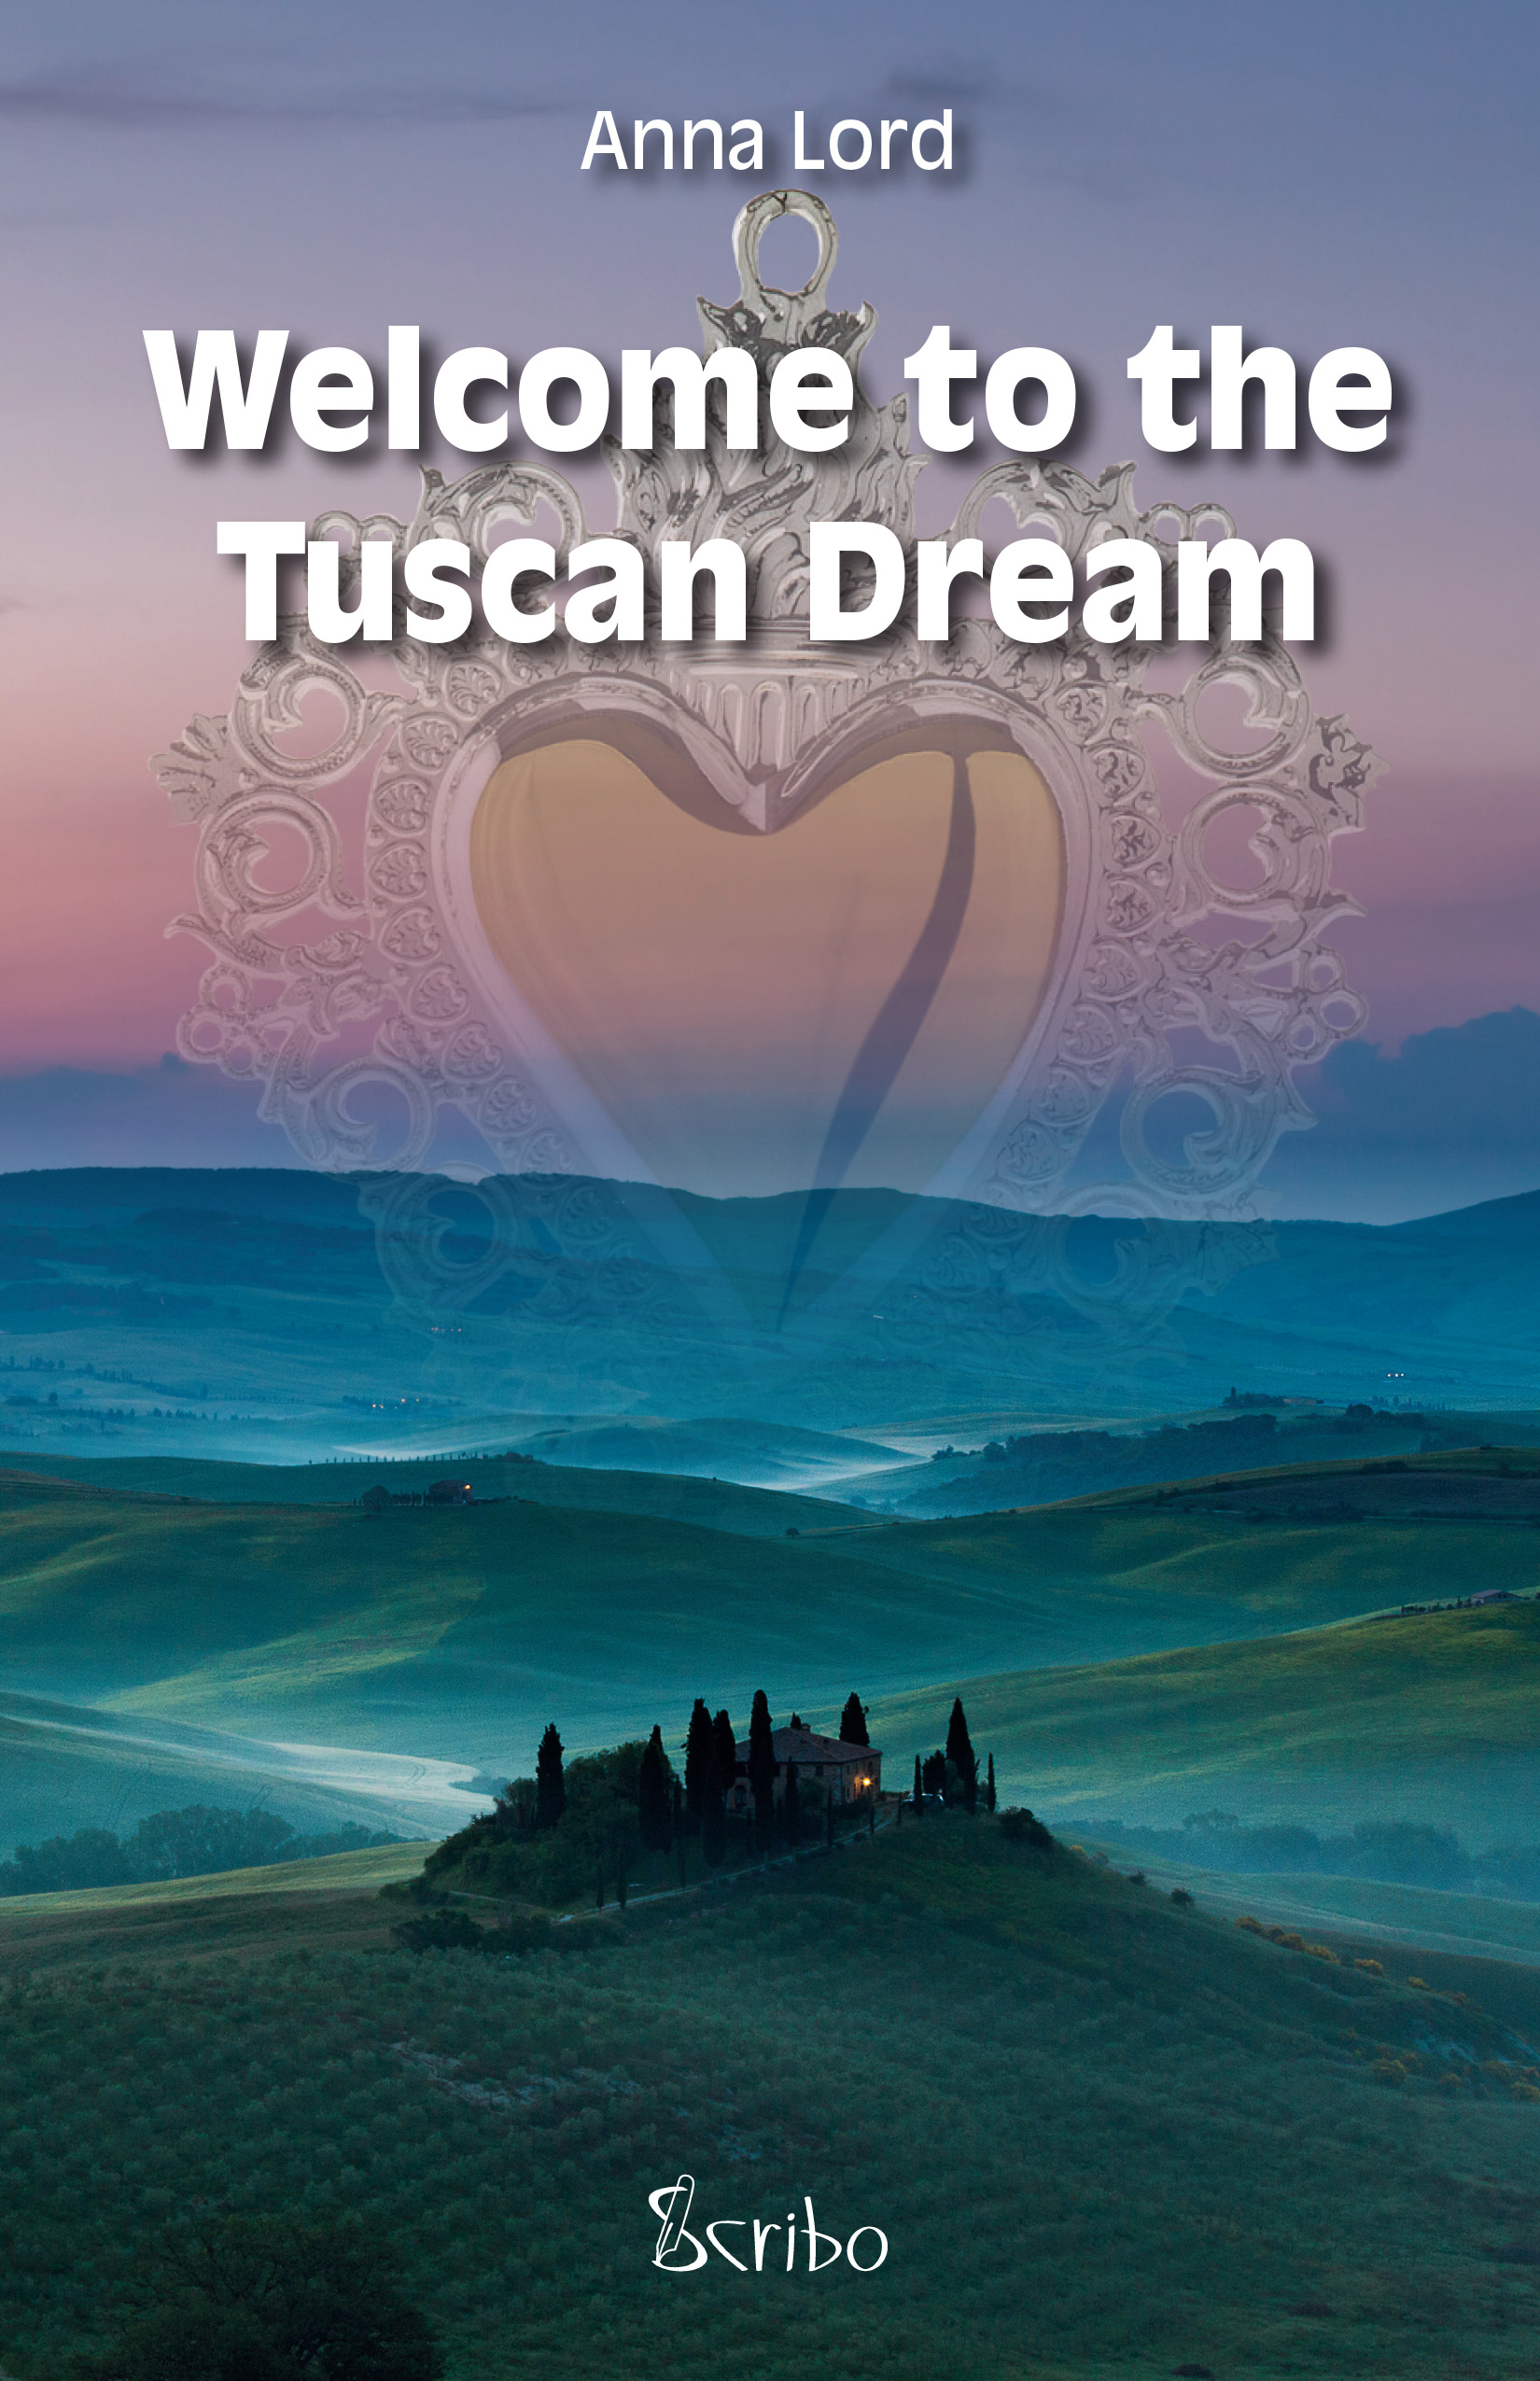 Welcome to the Tuscan Dream (3rd edition)